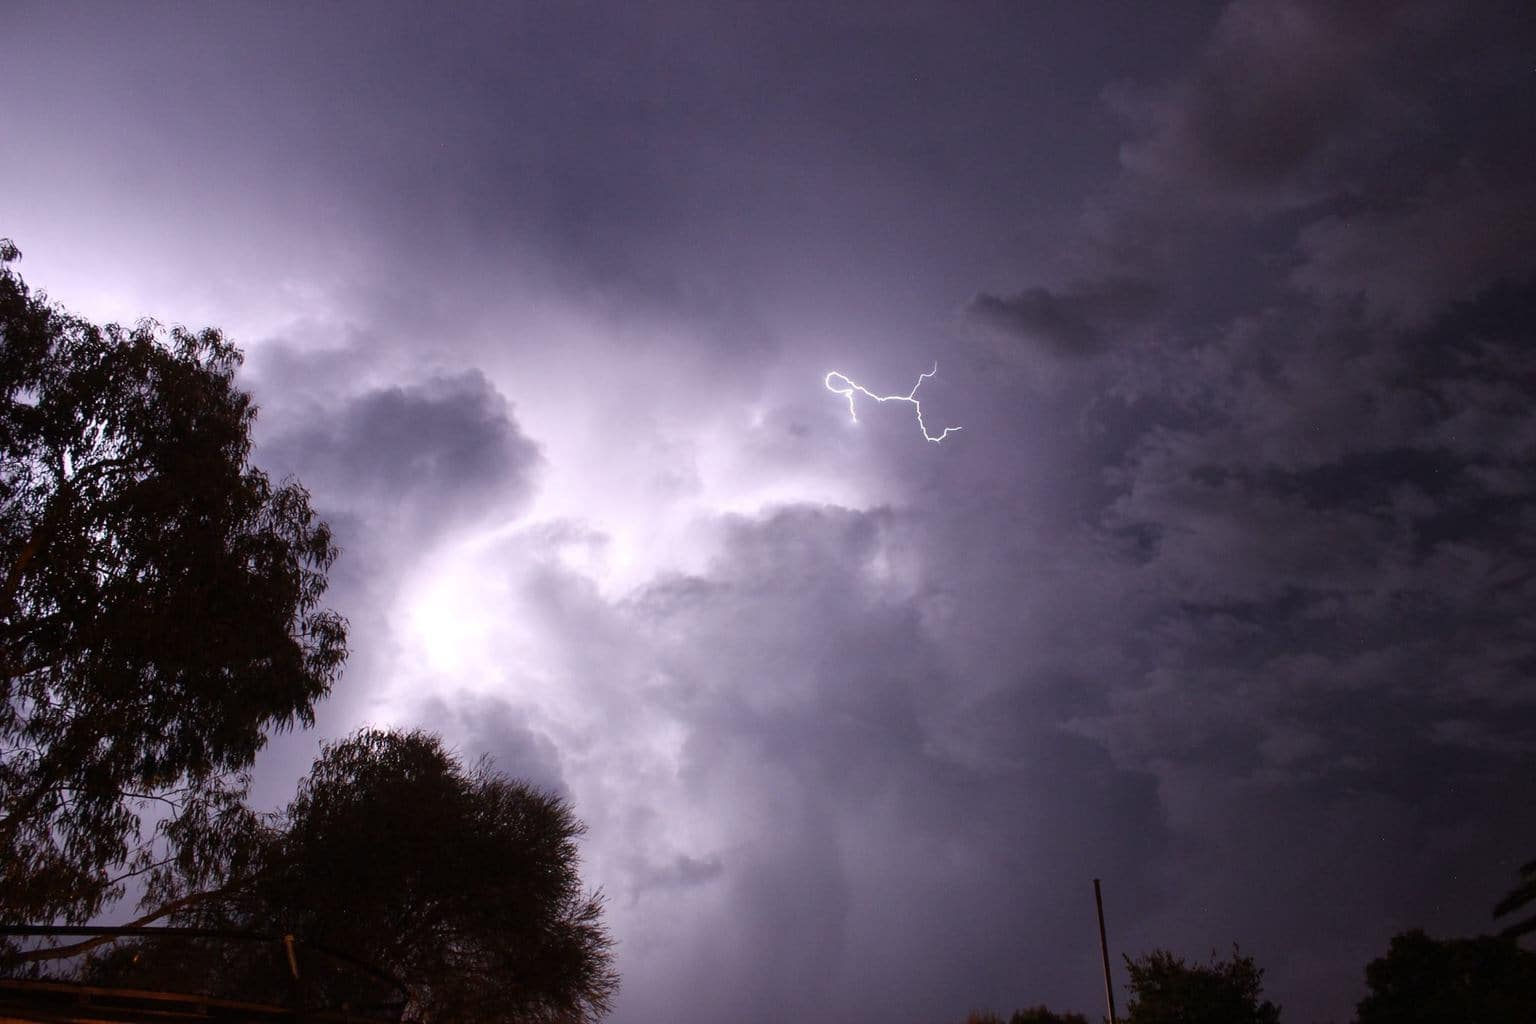 A brief but intense storm passed over Cowra, NSW, Australia. Continuous lightning lit up the sky for over 40 minutes and I took numerous shots from my backyard before rain arrived!! 29th March 2017.